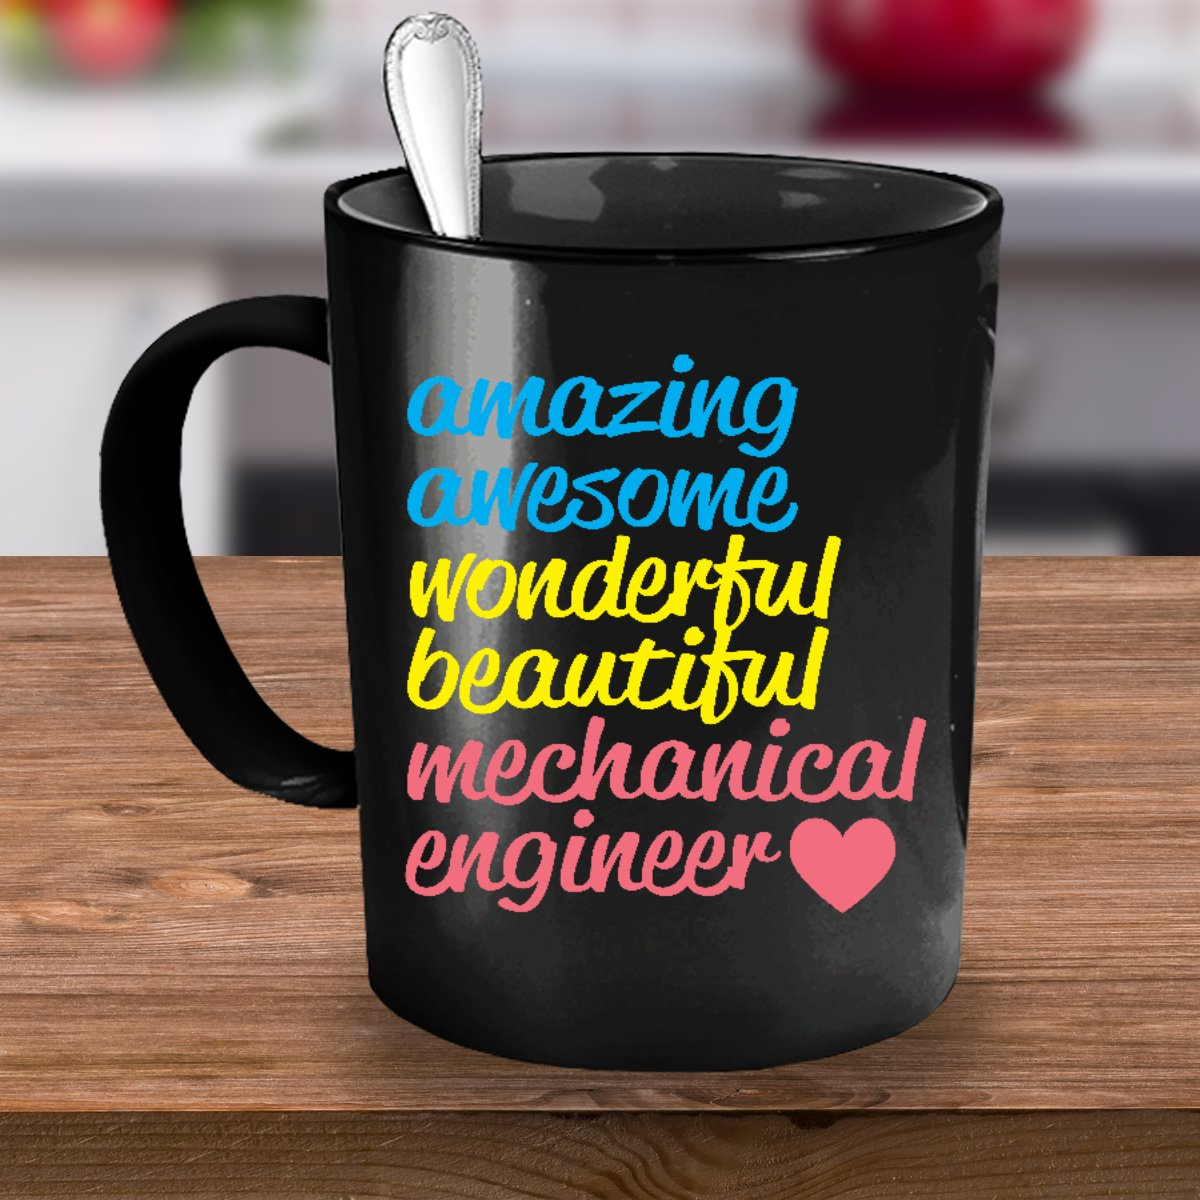 If you love an Amazing #MechanicalEngineer #MechEng http://the-vip-emporium.com/collections/job-related/products/amazing-mechanical-engineer-mug …pic.twitter.com/SNG02rphc8